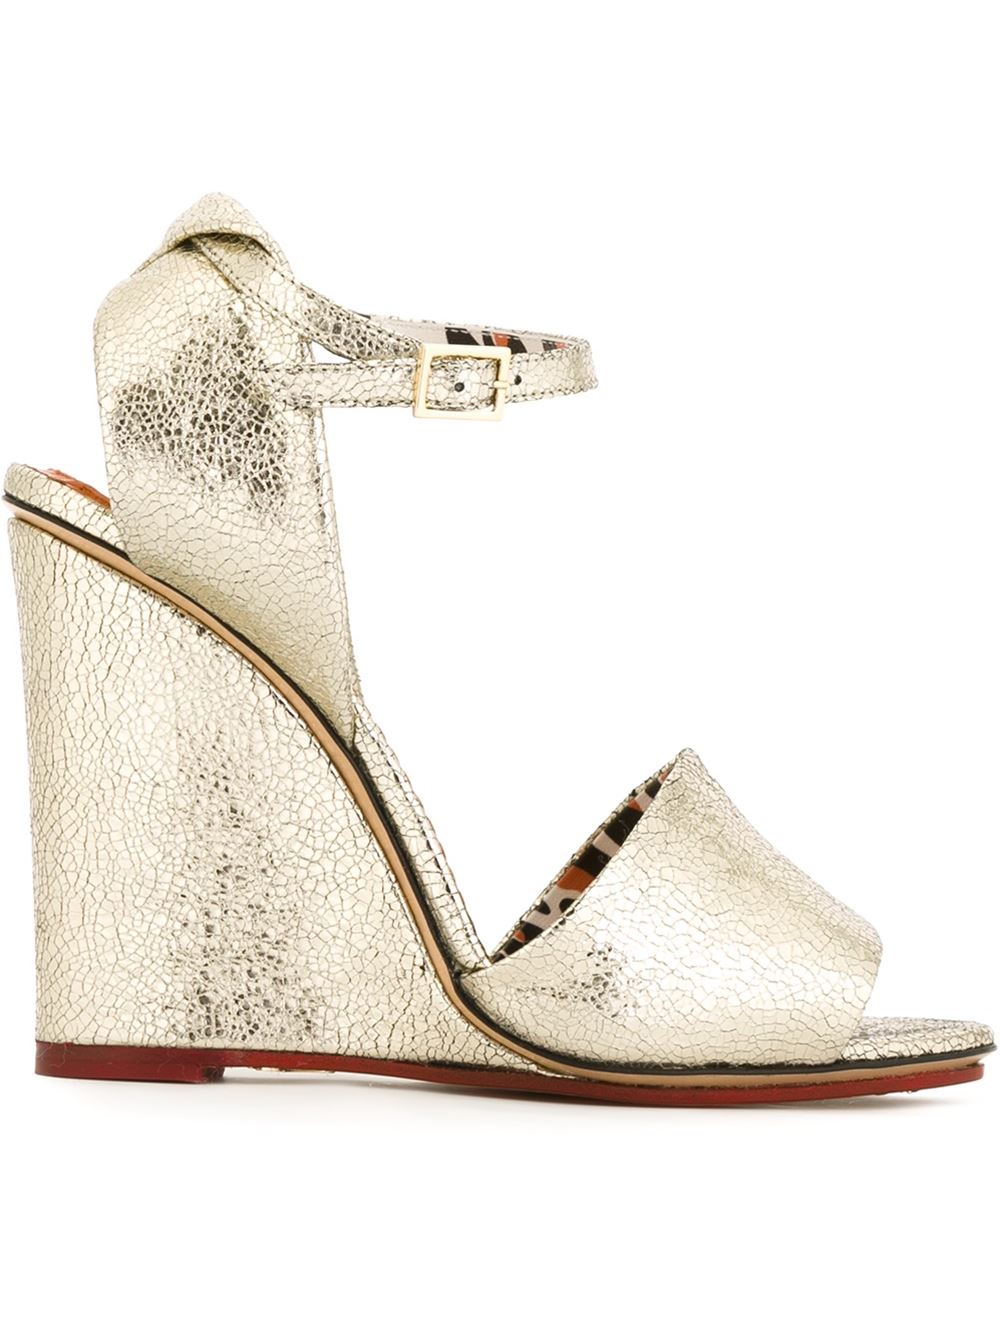 Charlotte Olympia Mischievous sandals, FarFetch.com